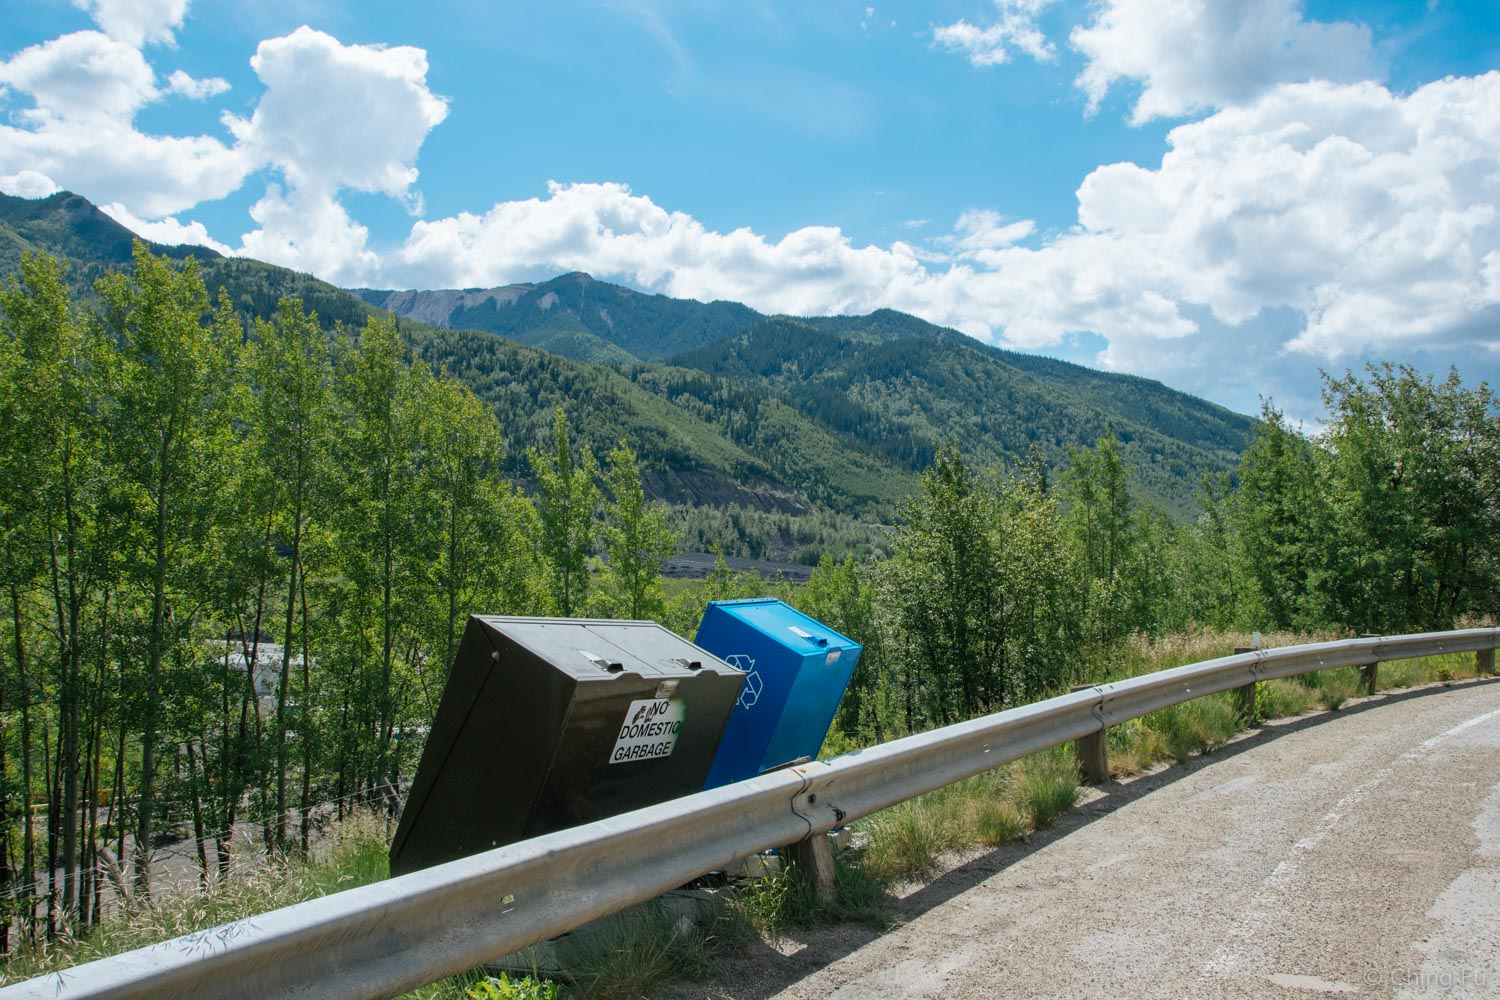 There are recycling bins next to trash cans at a lot of the pullouts along the highways in Alberta and British Columbia. The only downside is that the bins don't state what is recyclable.